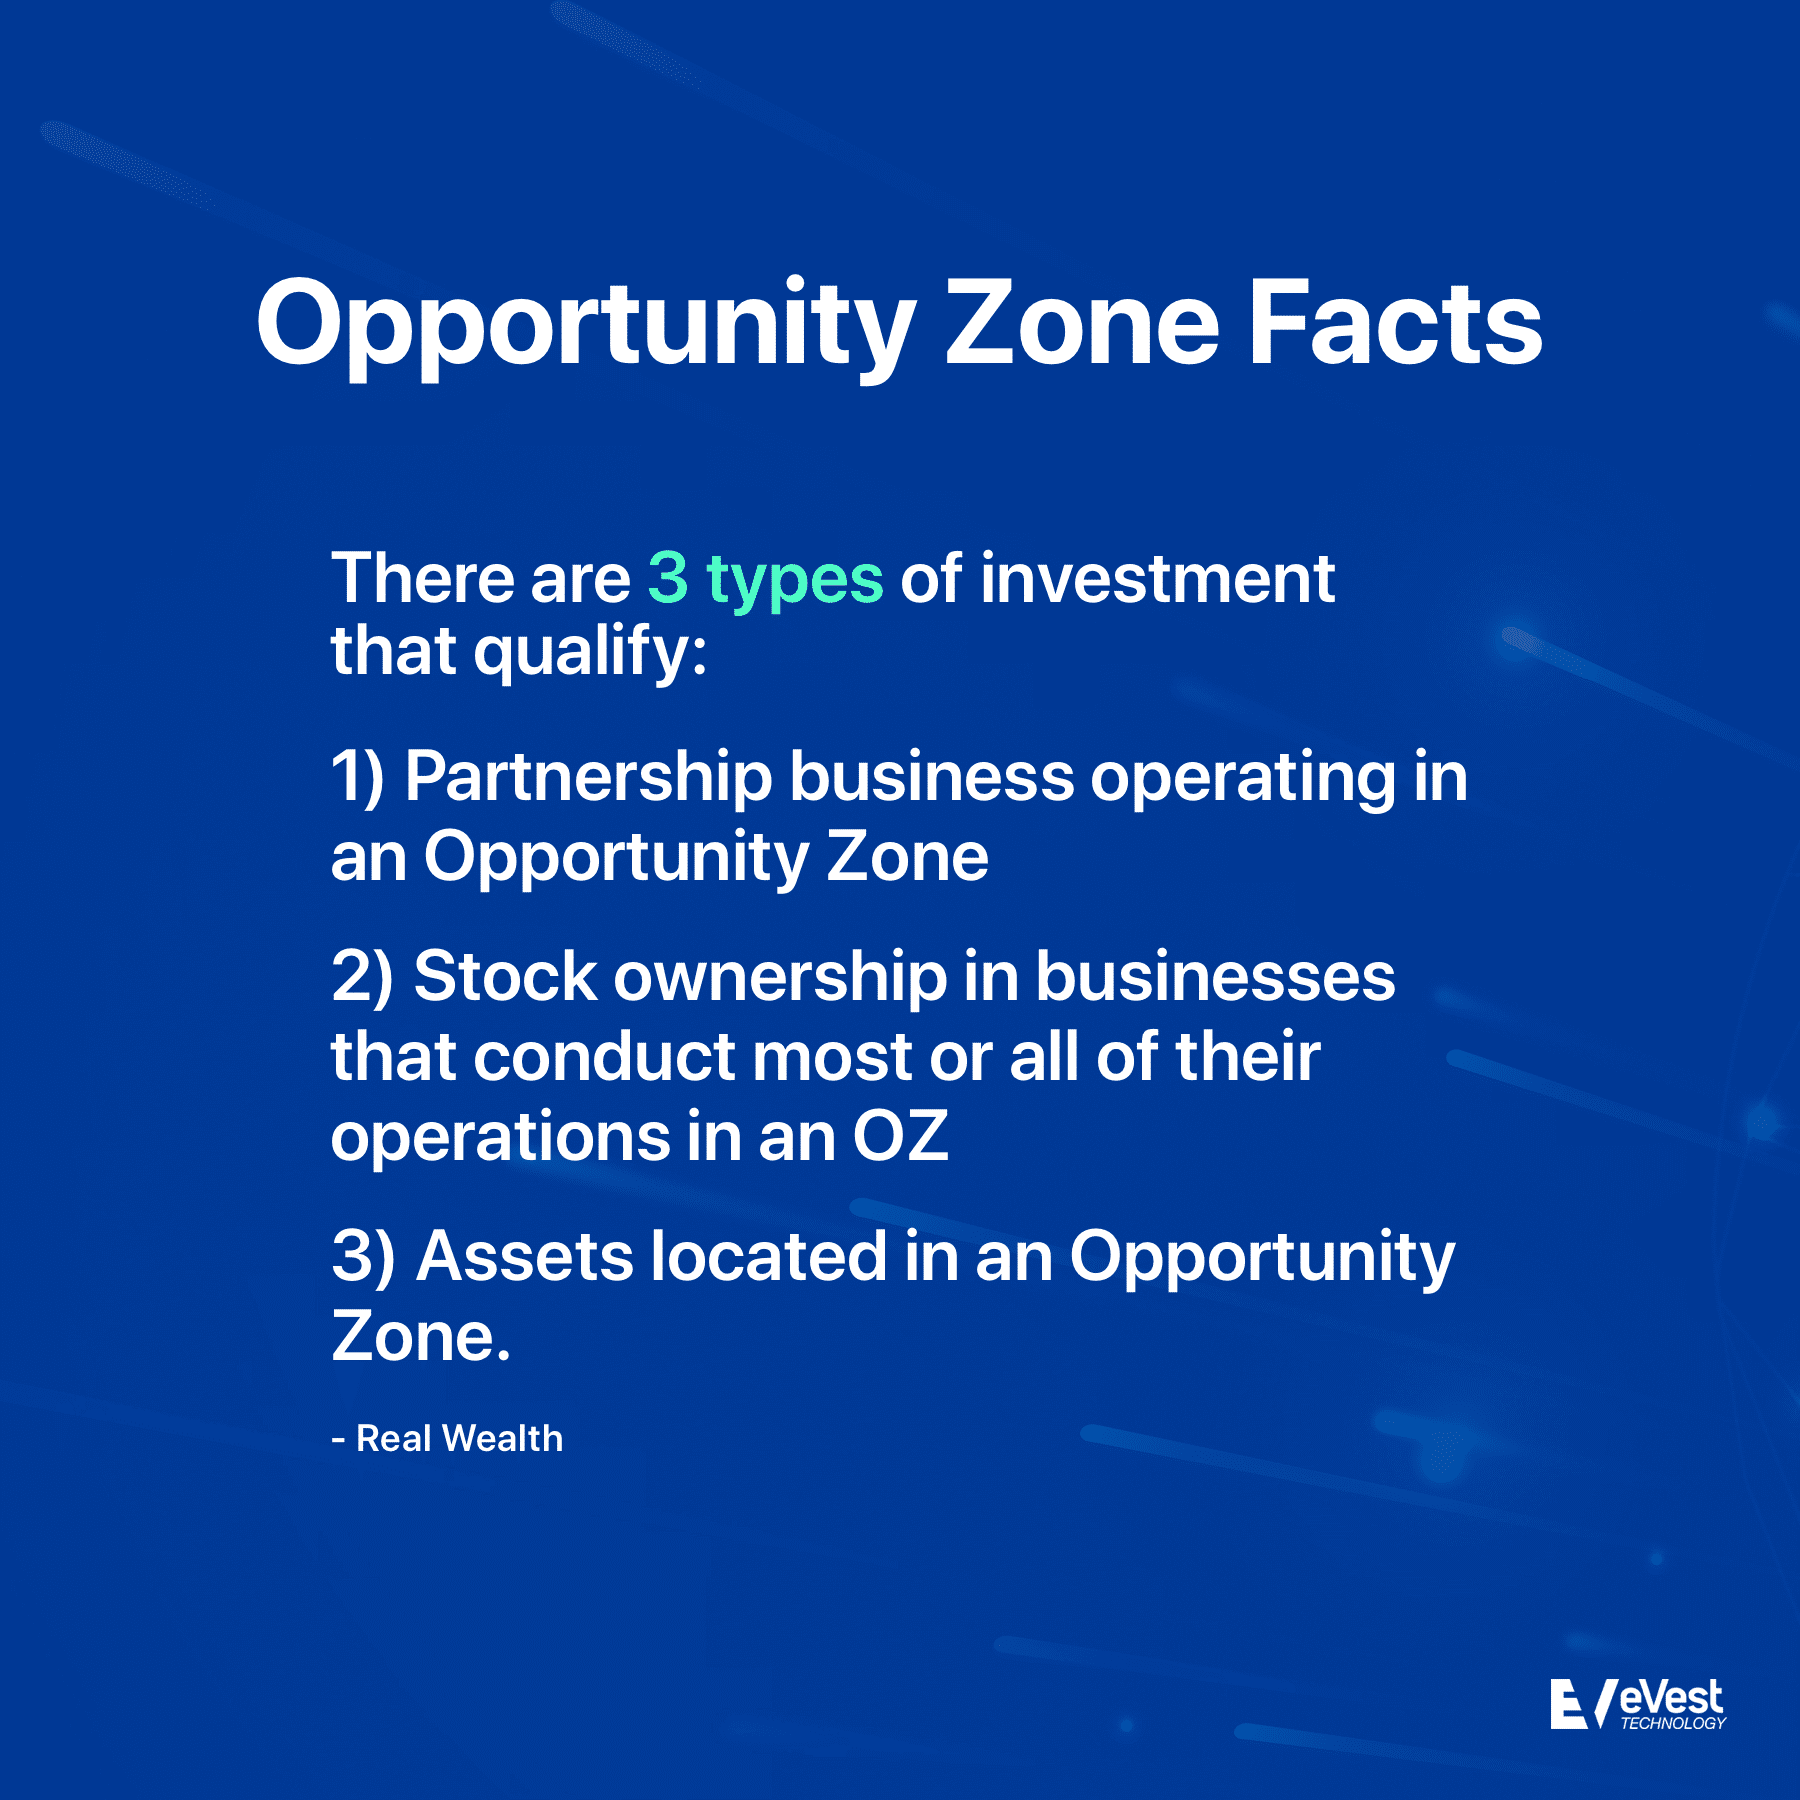 There are 3 types of investment that qualify for Opportunity Zones